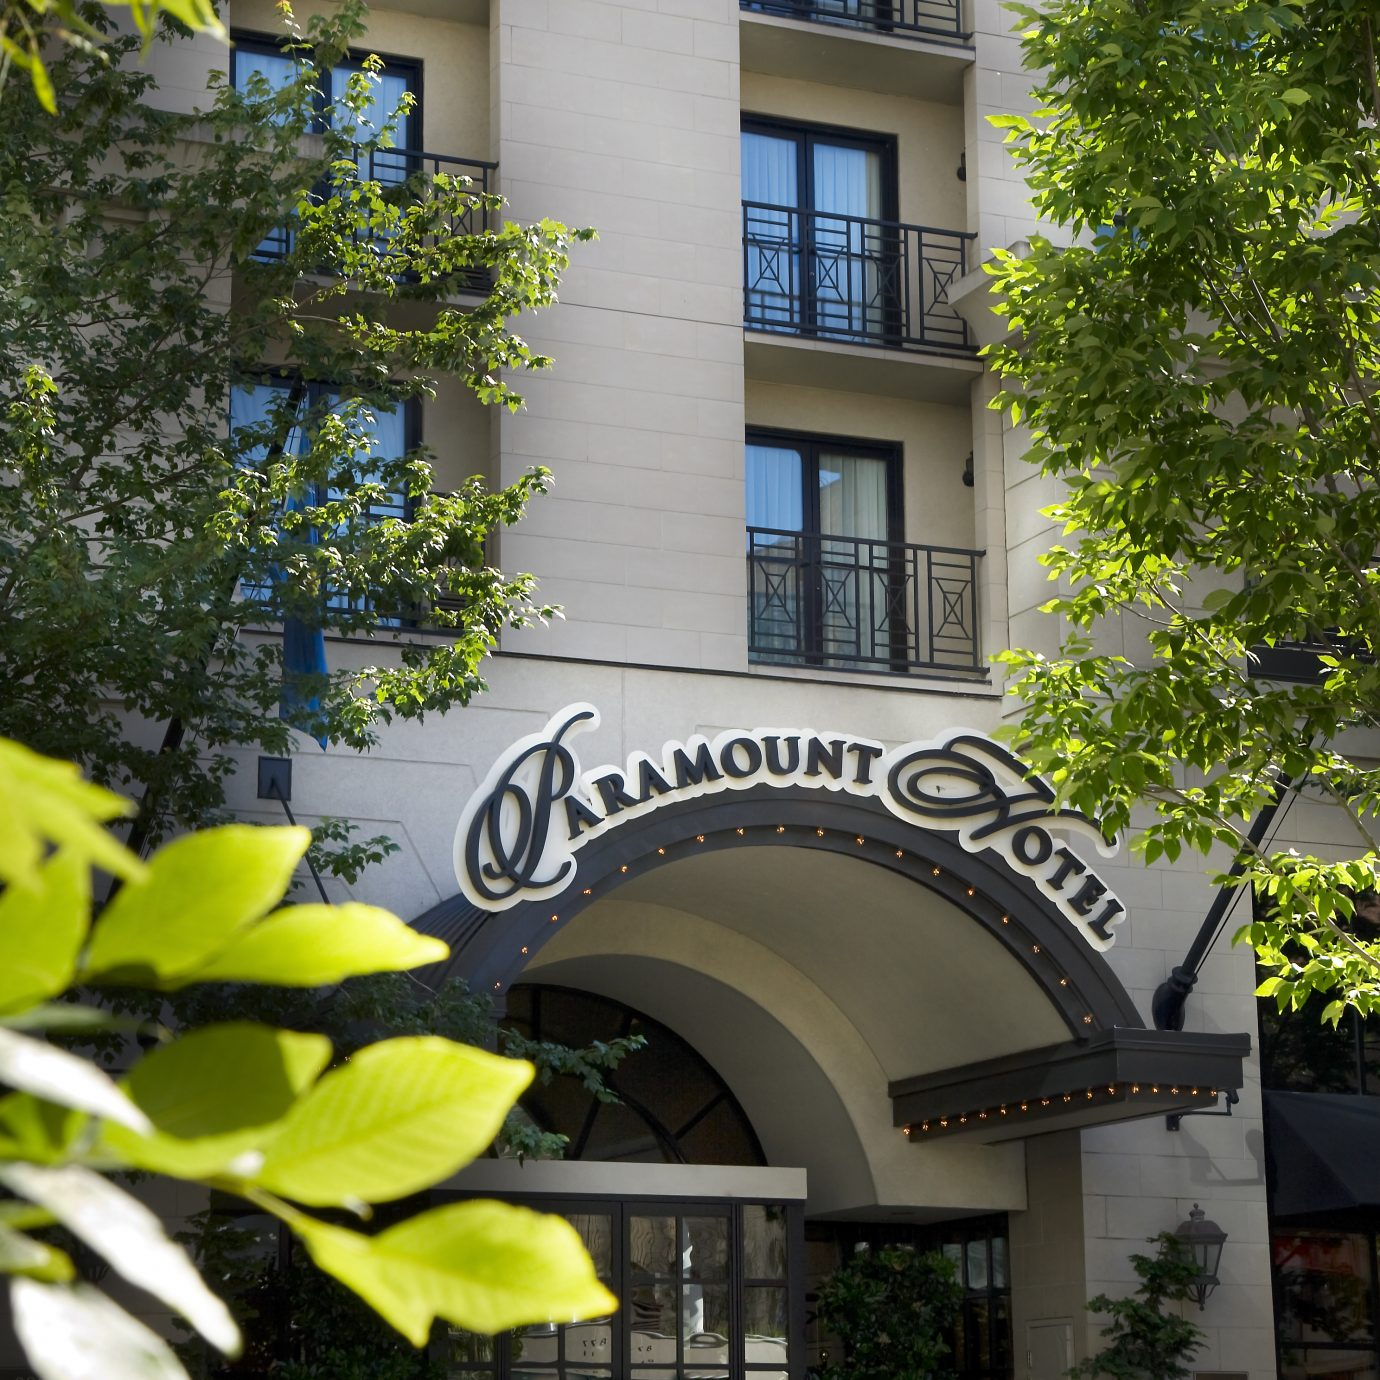 exterior close up of Paramount Portland